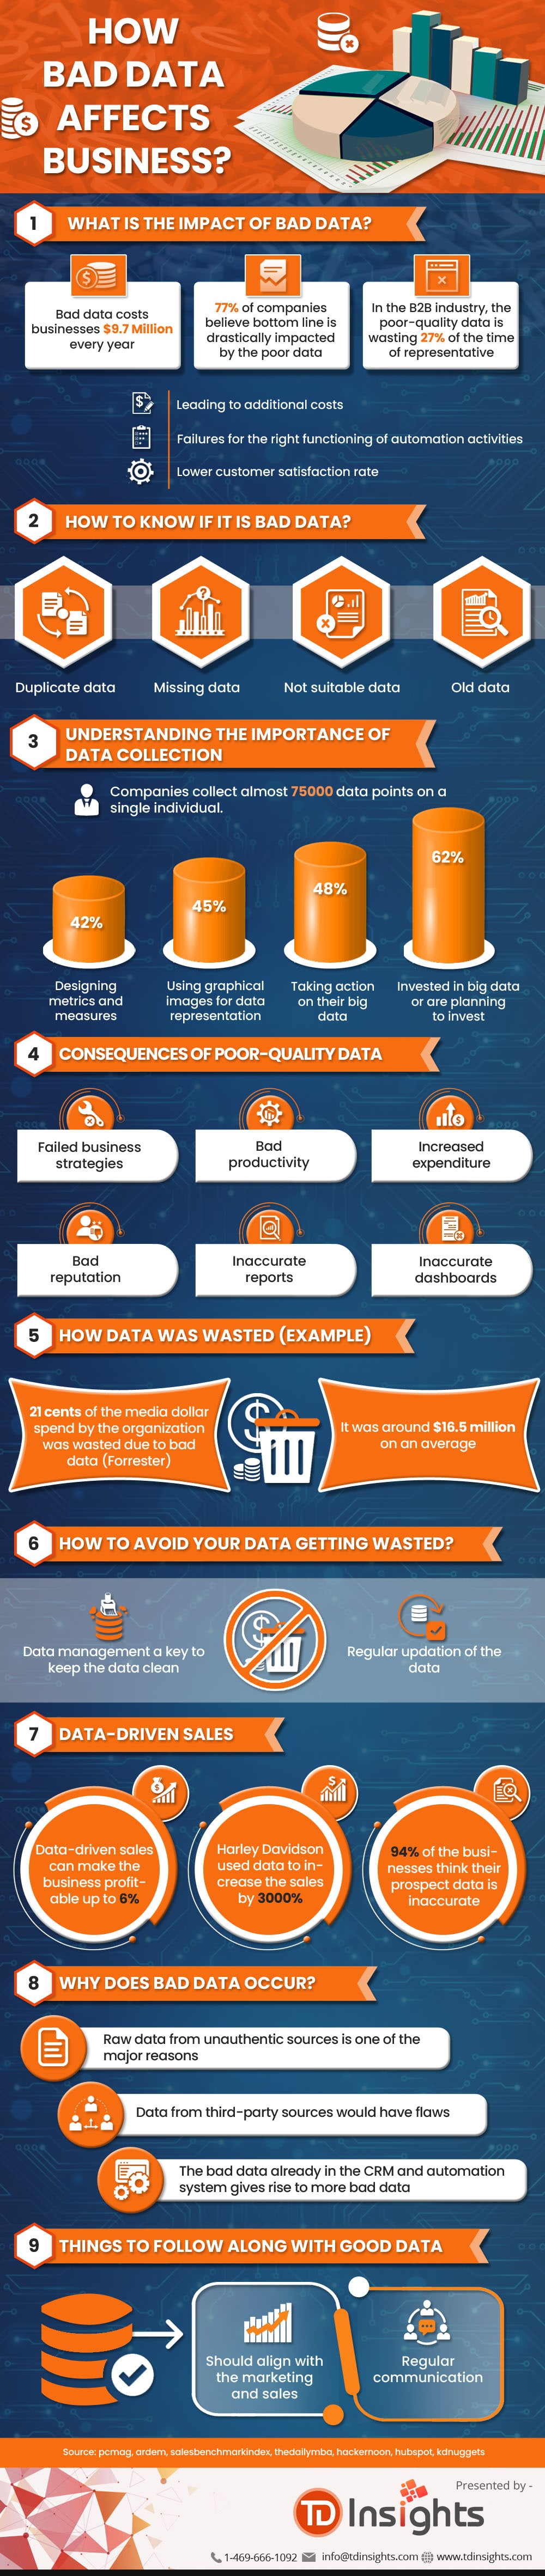 How Bad Data Affects Business?